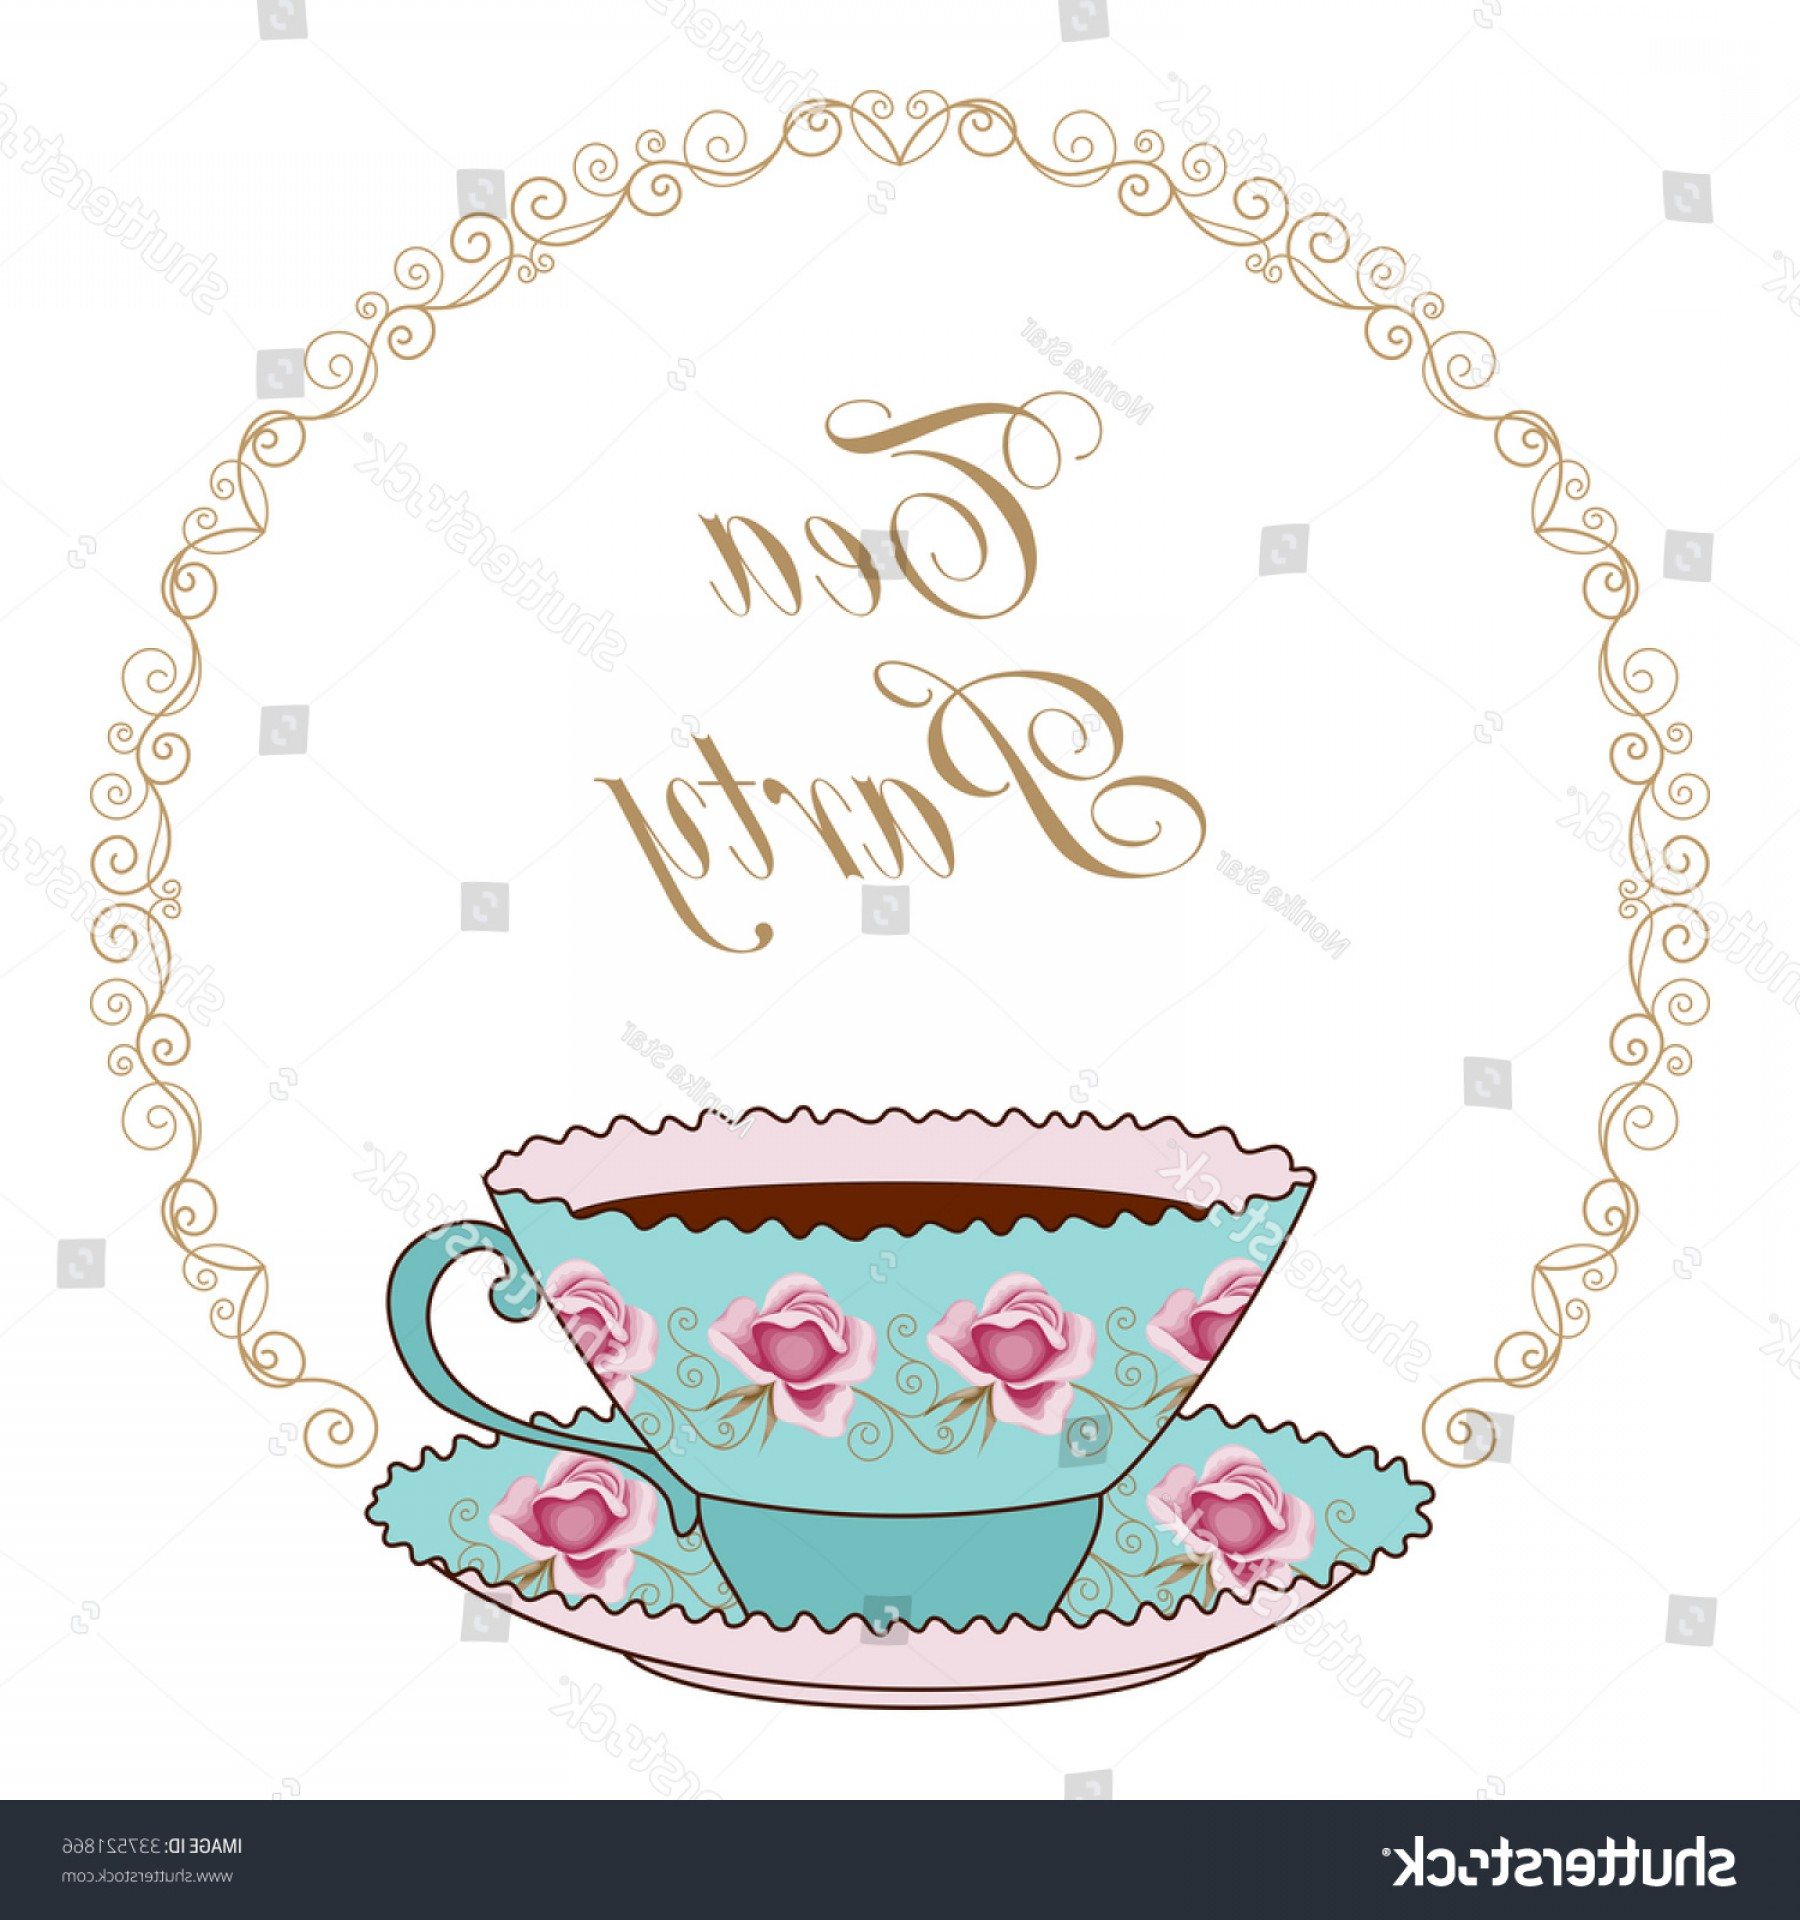 Vintage Tea Cup Vector: Hand Drawn Illustration Vintage Tea Cup